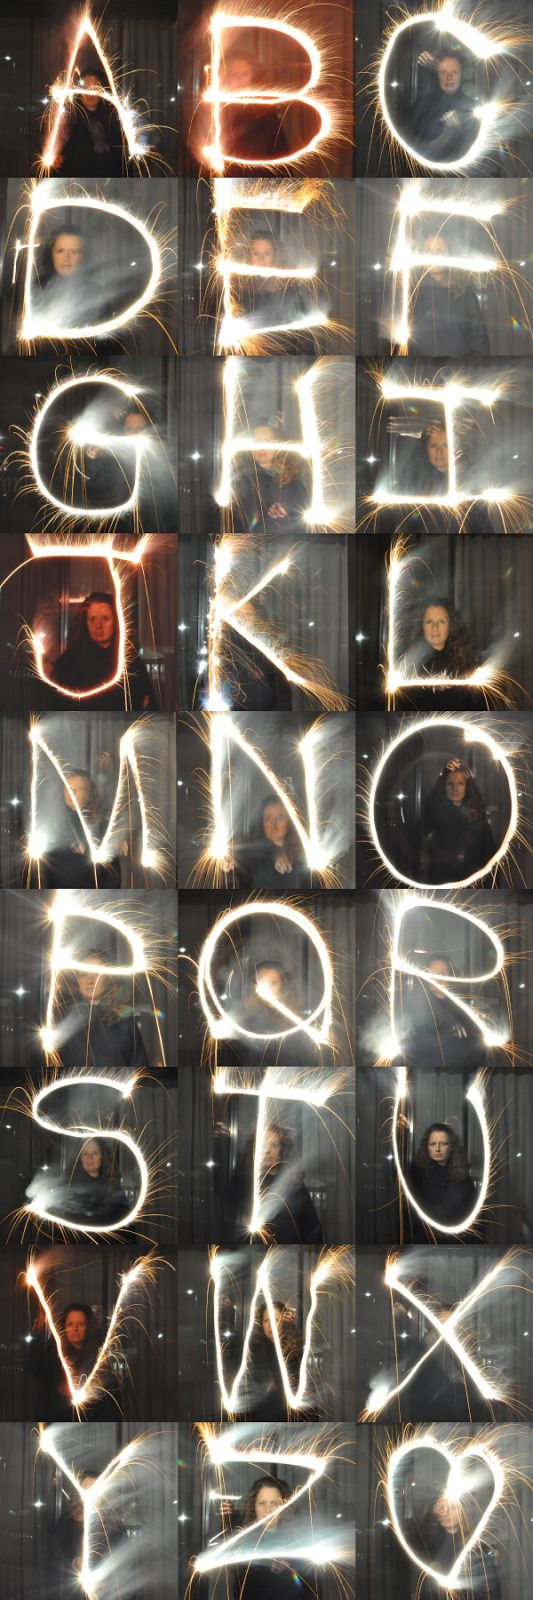 a sparkler photography tutorial: how to write with sparklers and catch it on camera!